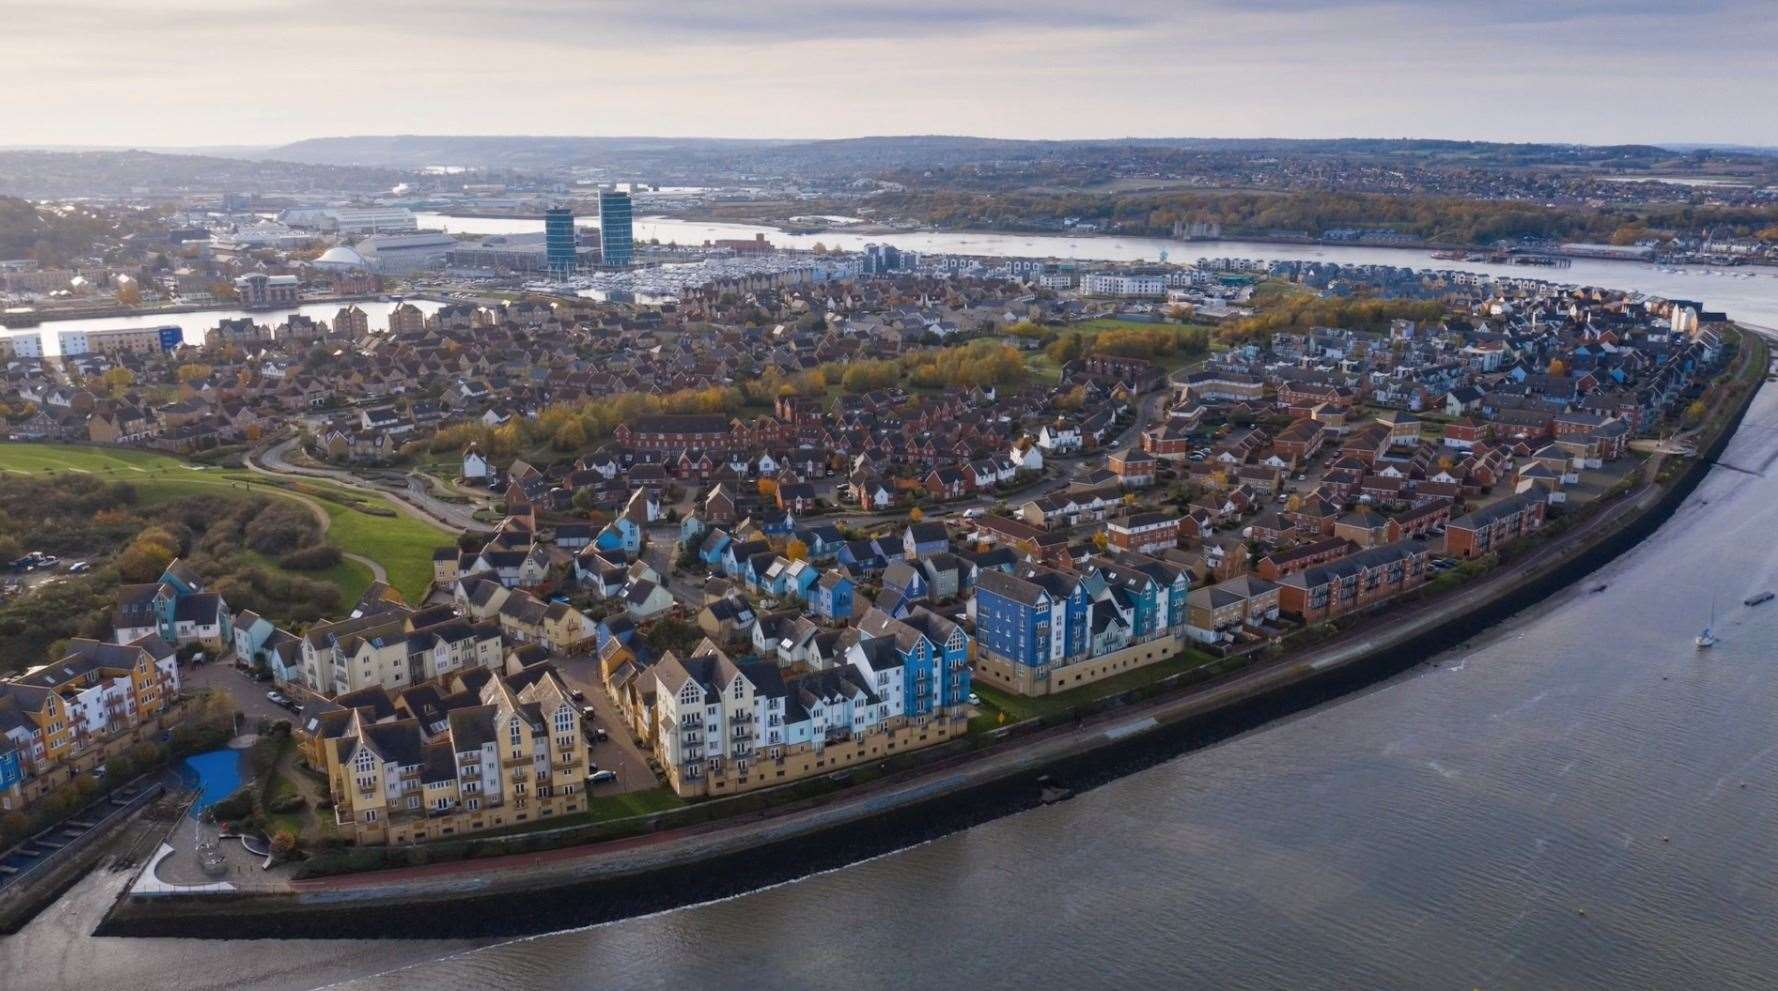 St Mary's Island has seen huge changes in the last few decades as shown by this picture from a drone. Picture: Geoff Watkins